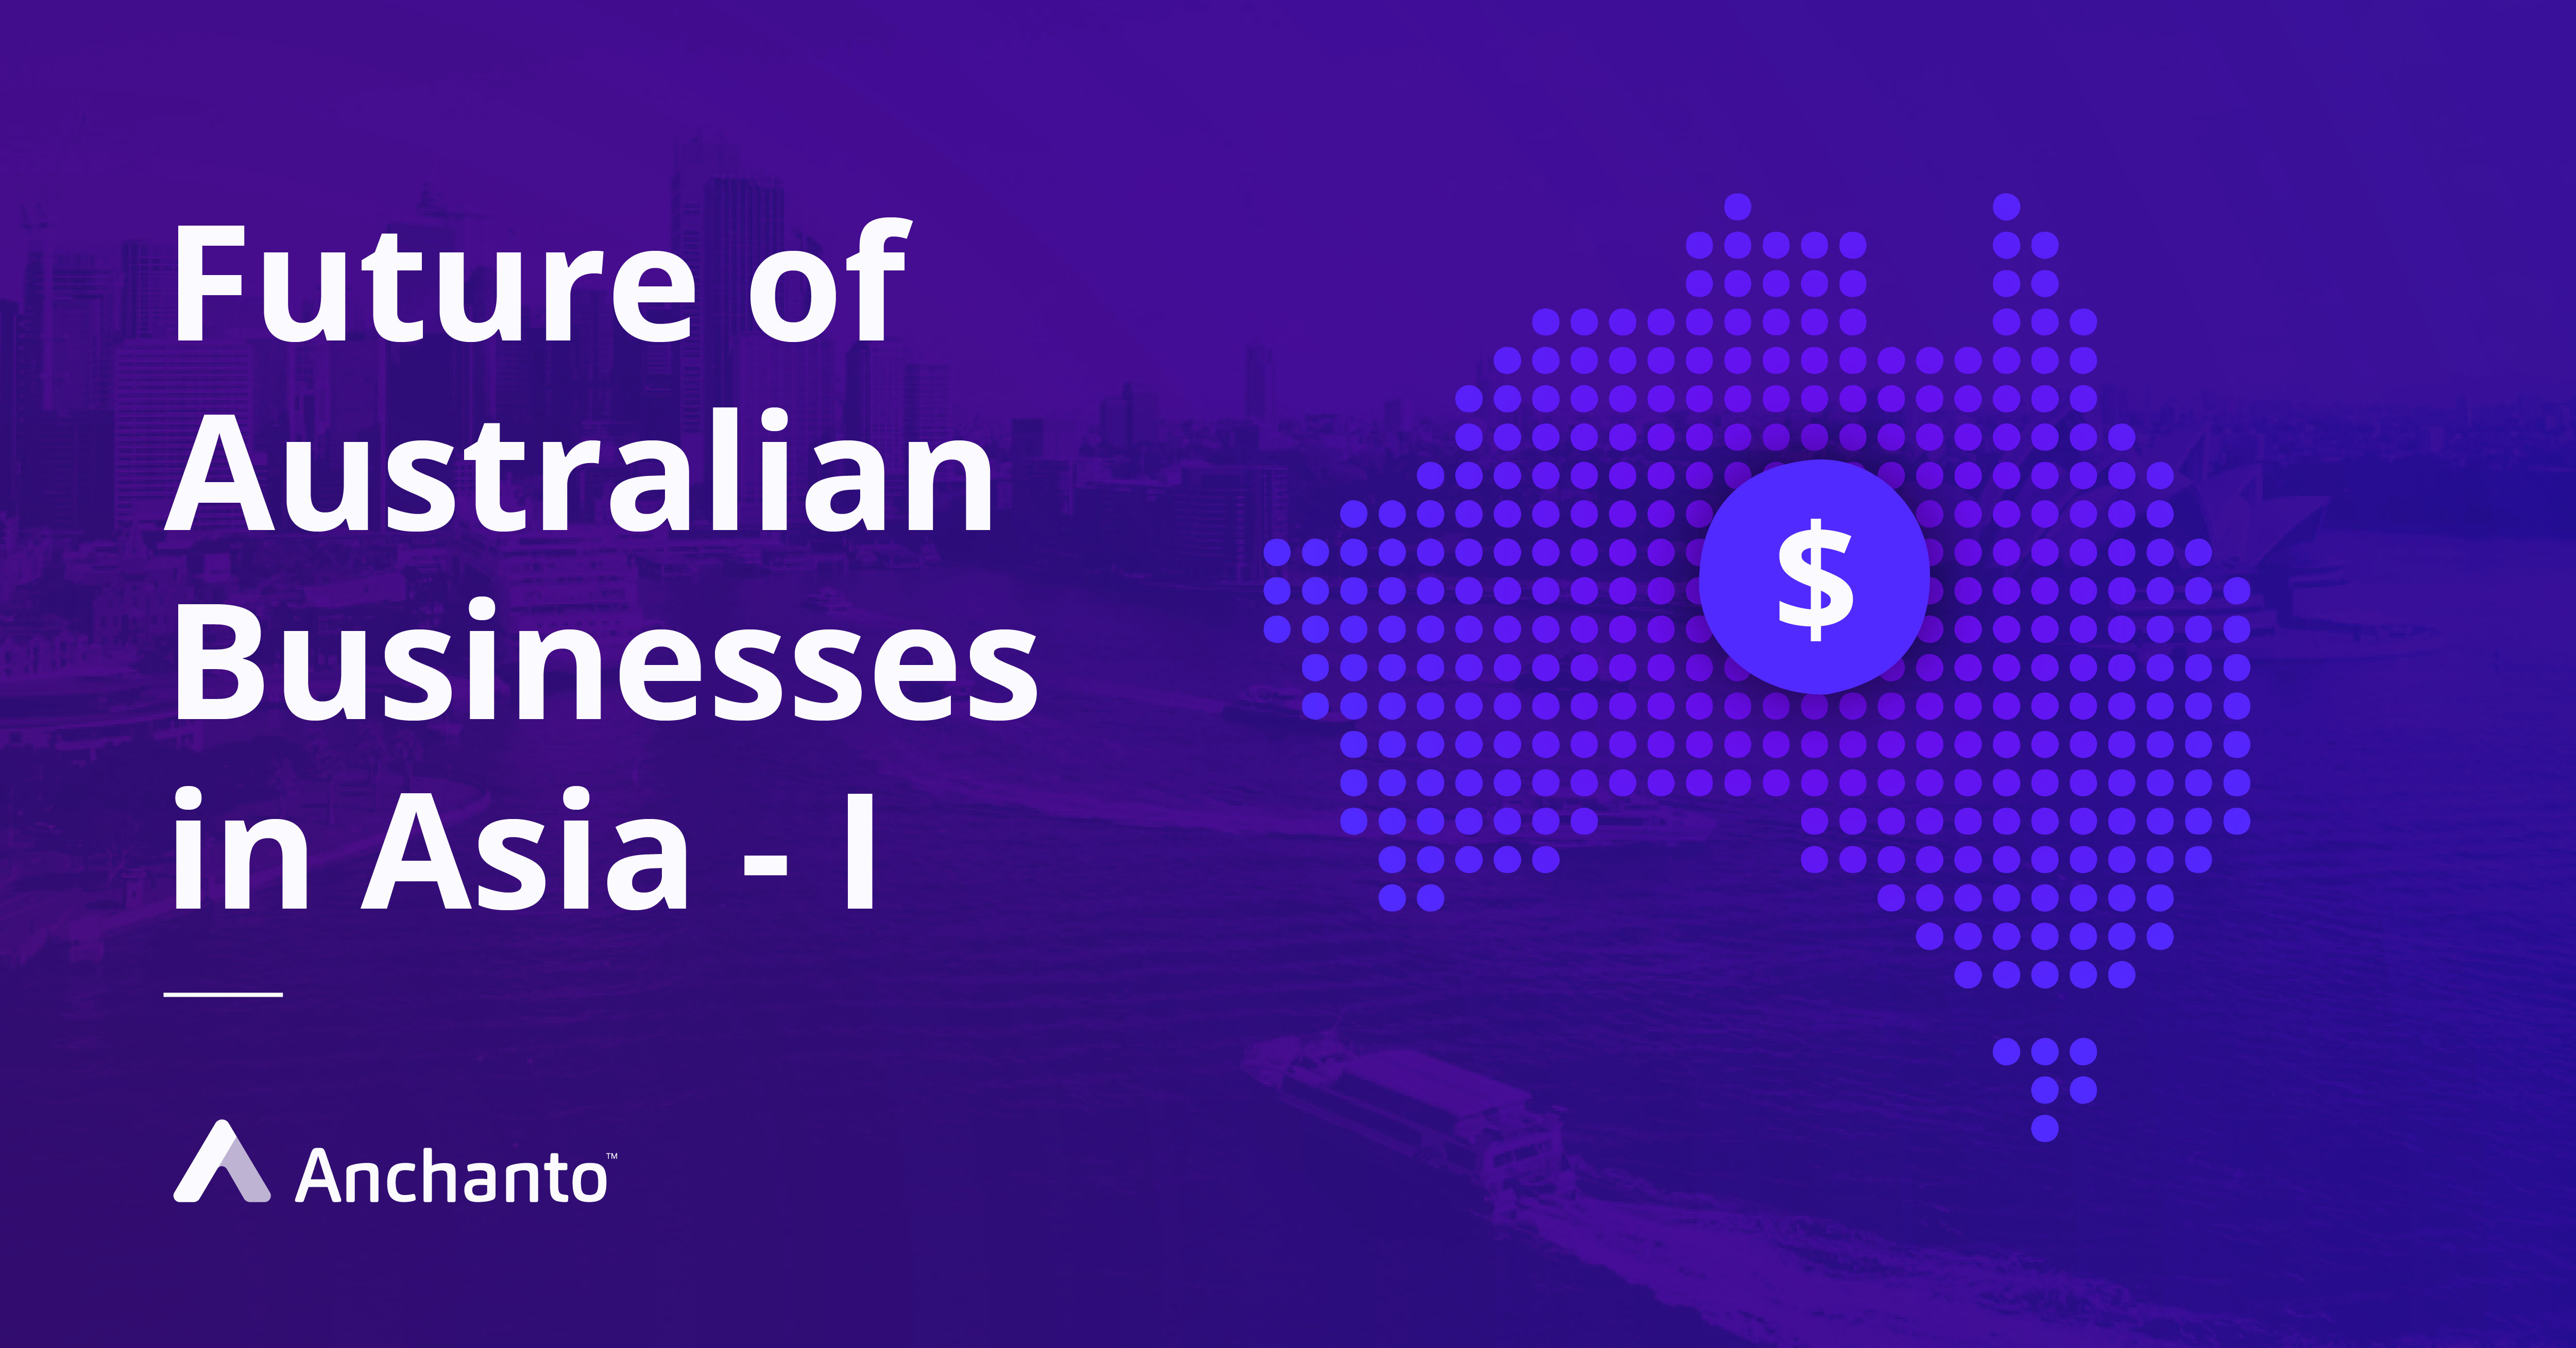 exploring_the_future_of_australian_businesses_in_asia_i